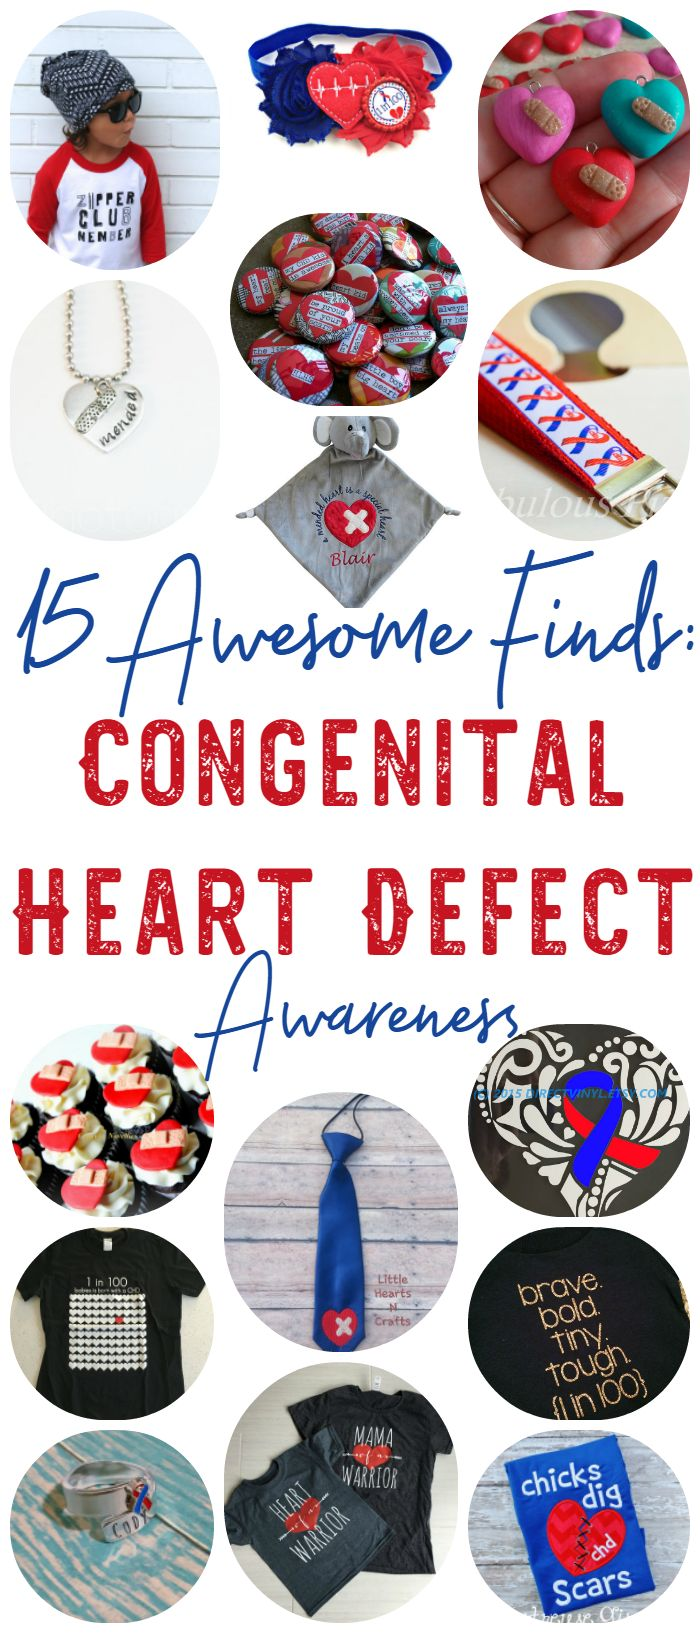 Support Congenital Heart Defect Awareness: 15 Awesome Finds - I found some super awesome things for our heart babies, Mom, Dad, and anyone else that loves showing their support for Congenital Heart Defect Awareness!